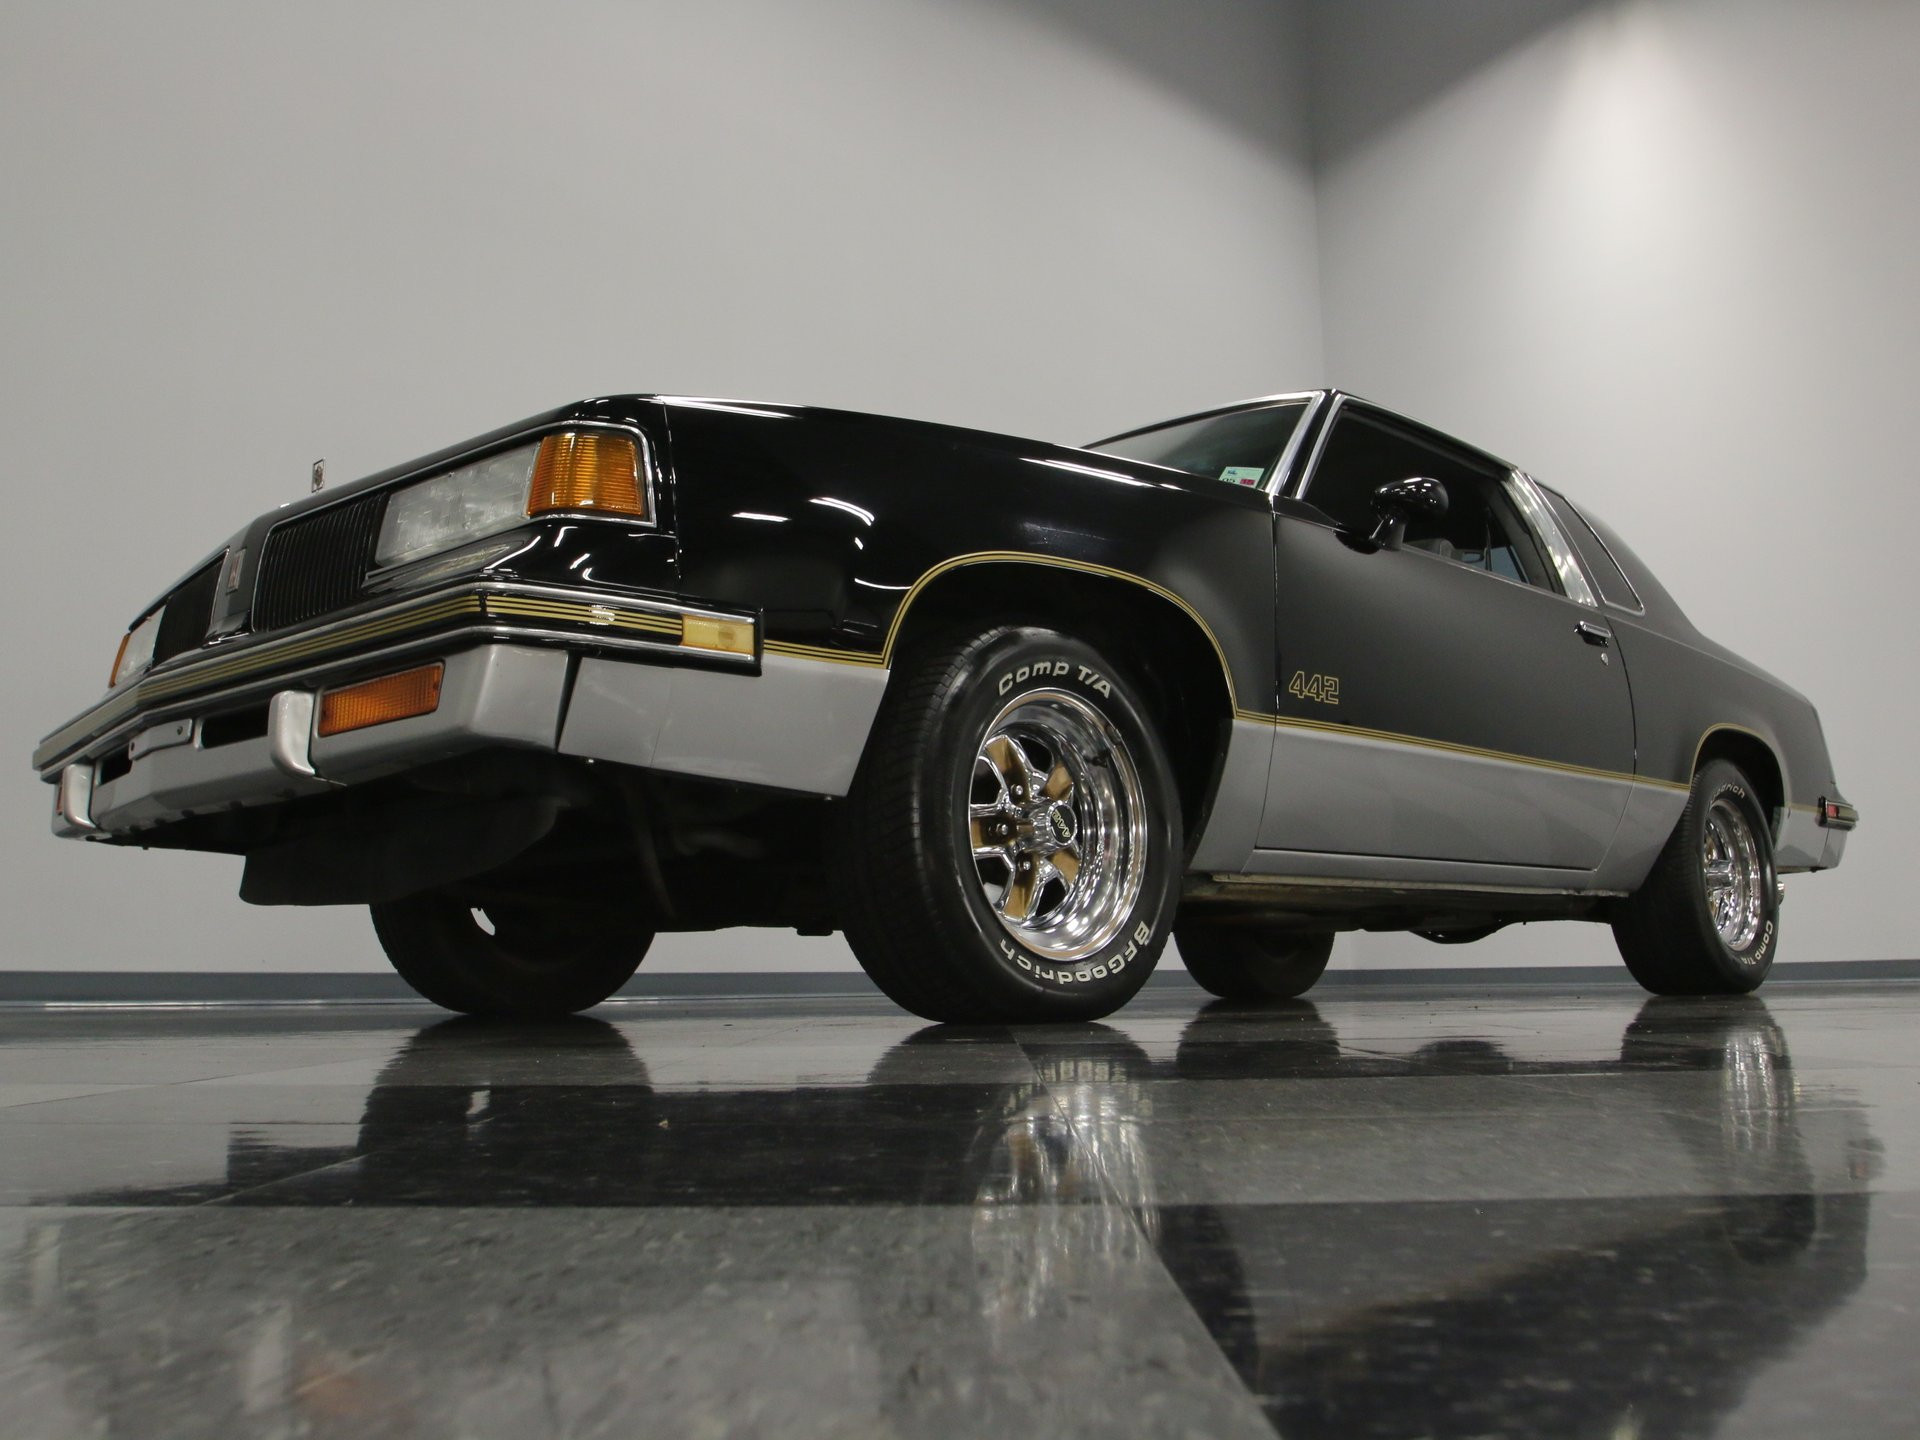 1987 Oldsmobile 442 | Streetside Classics - The Nation's